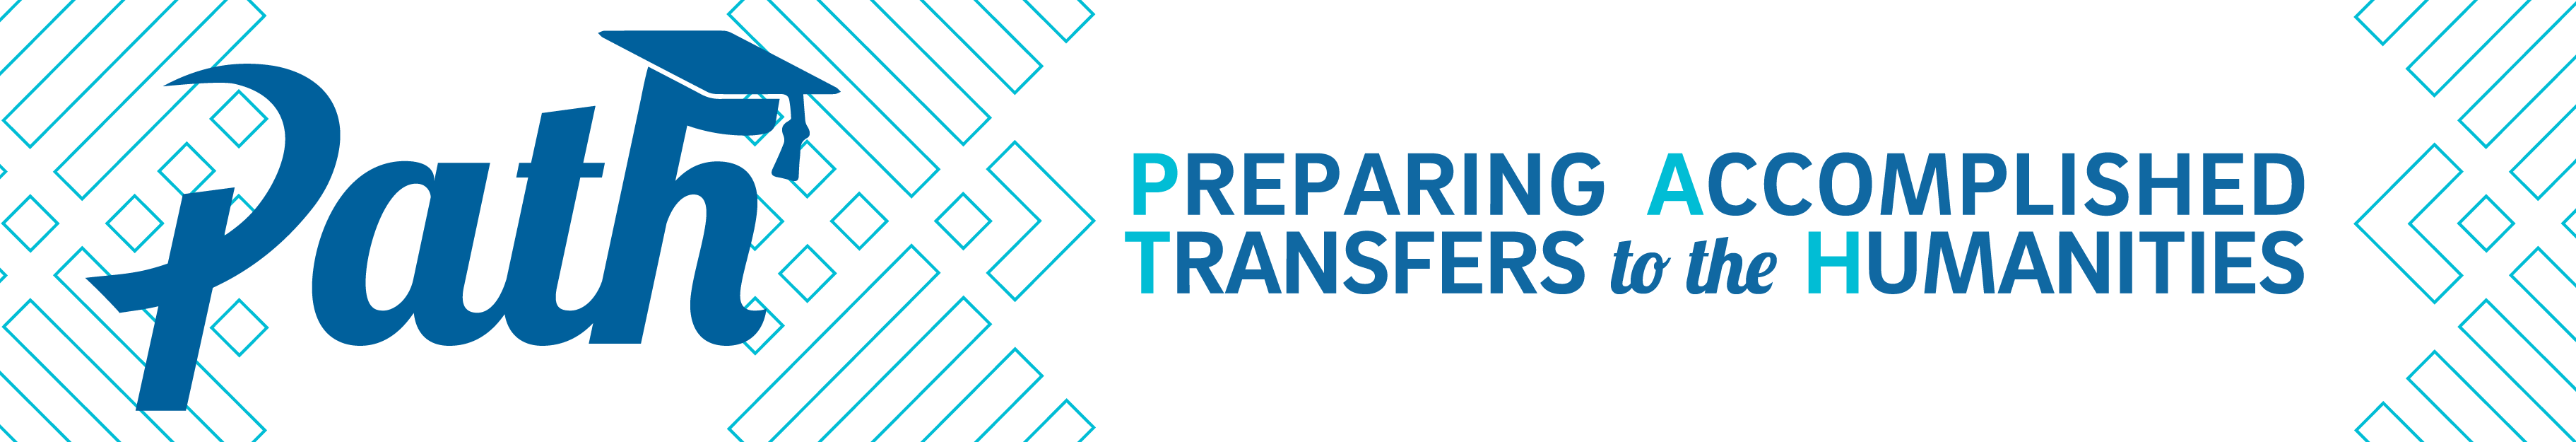 Preparing Accomplished Transfers to the Humanities